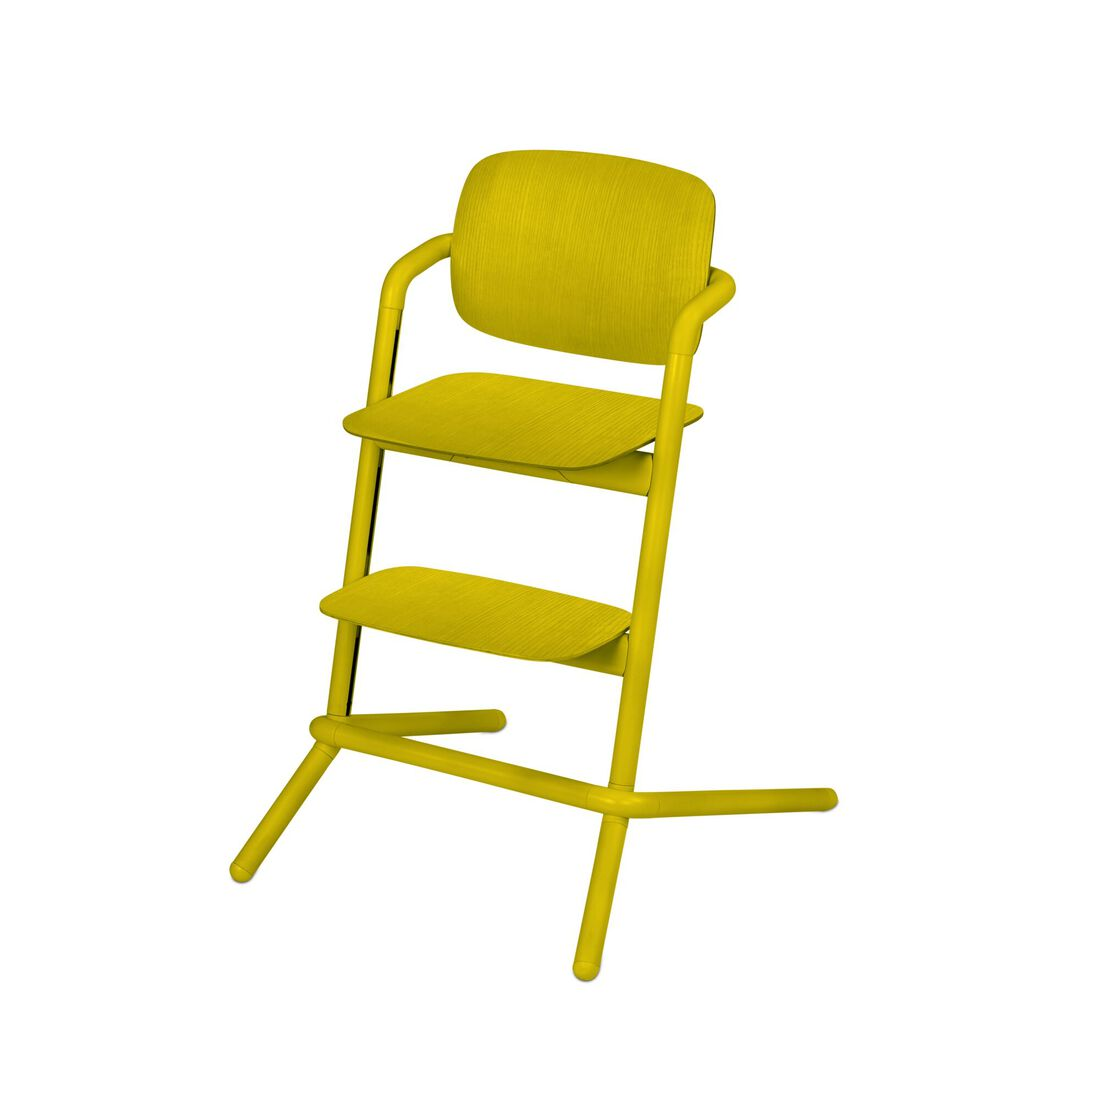 CYBEX Lemo Chair - Canary Yellow (Wood) in Canary Yellow (Wood) large image number 1